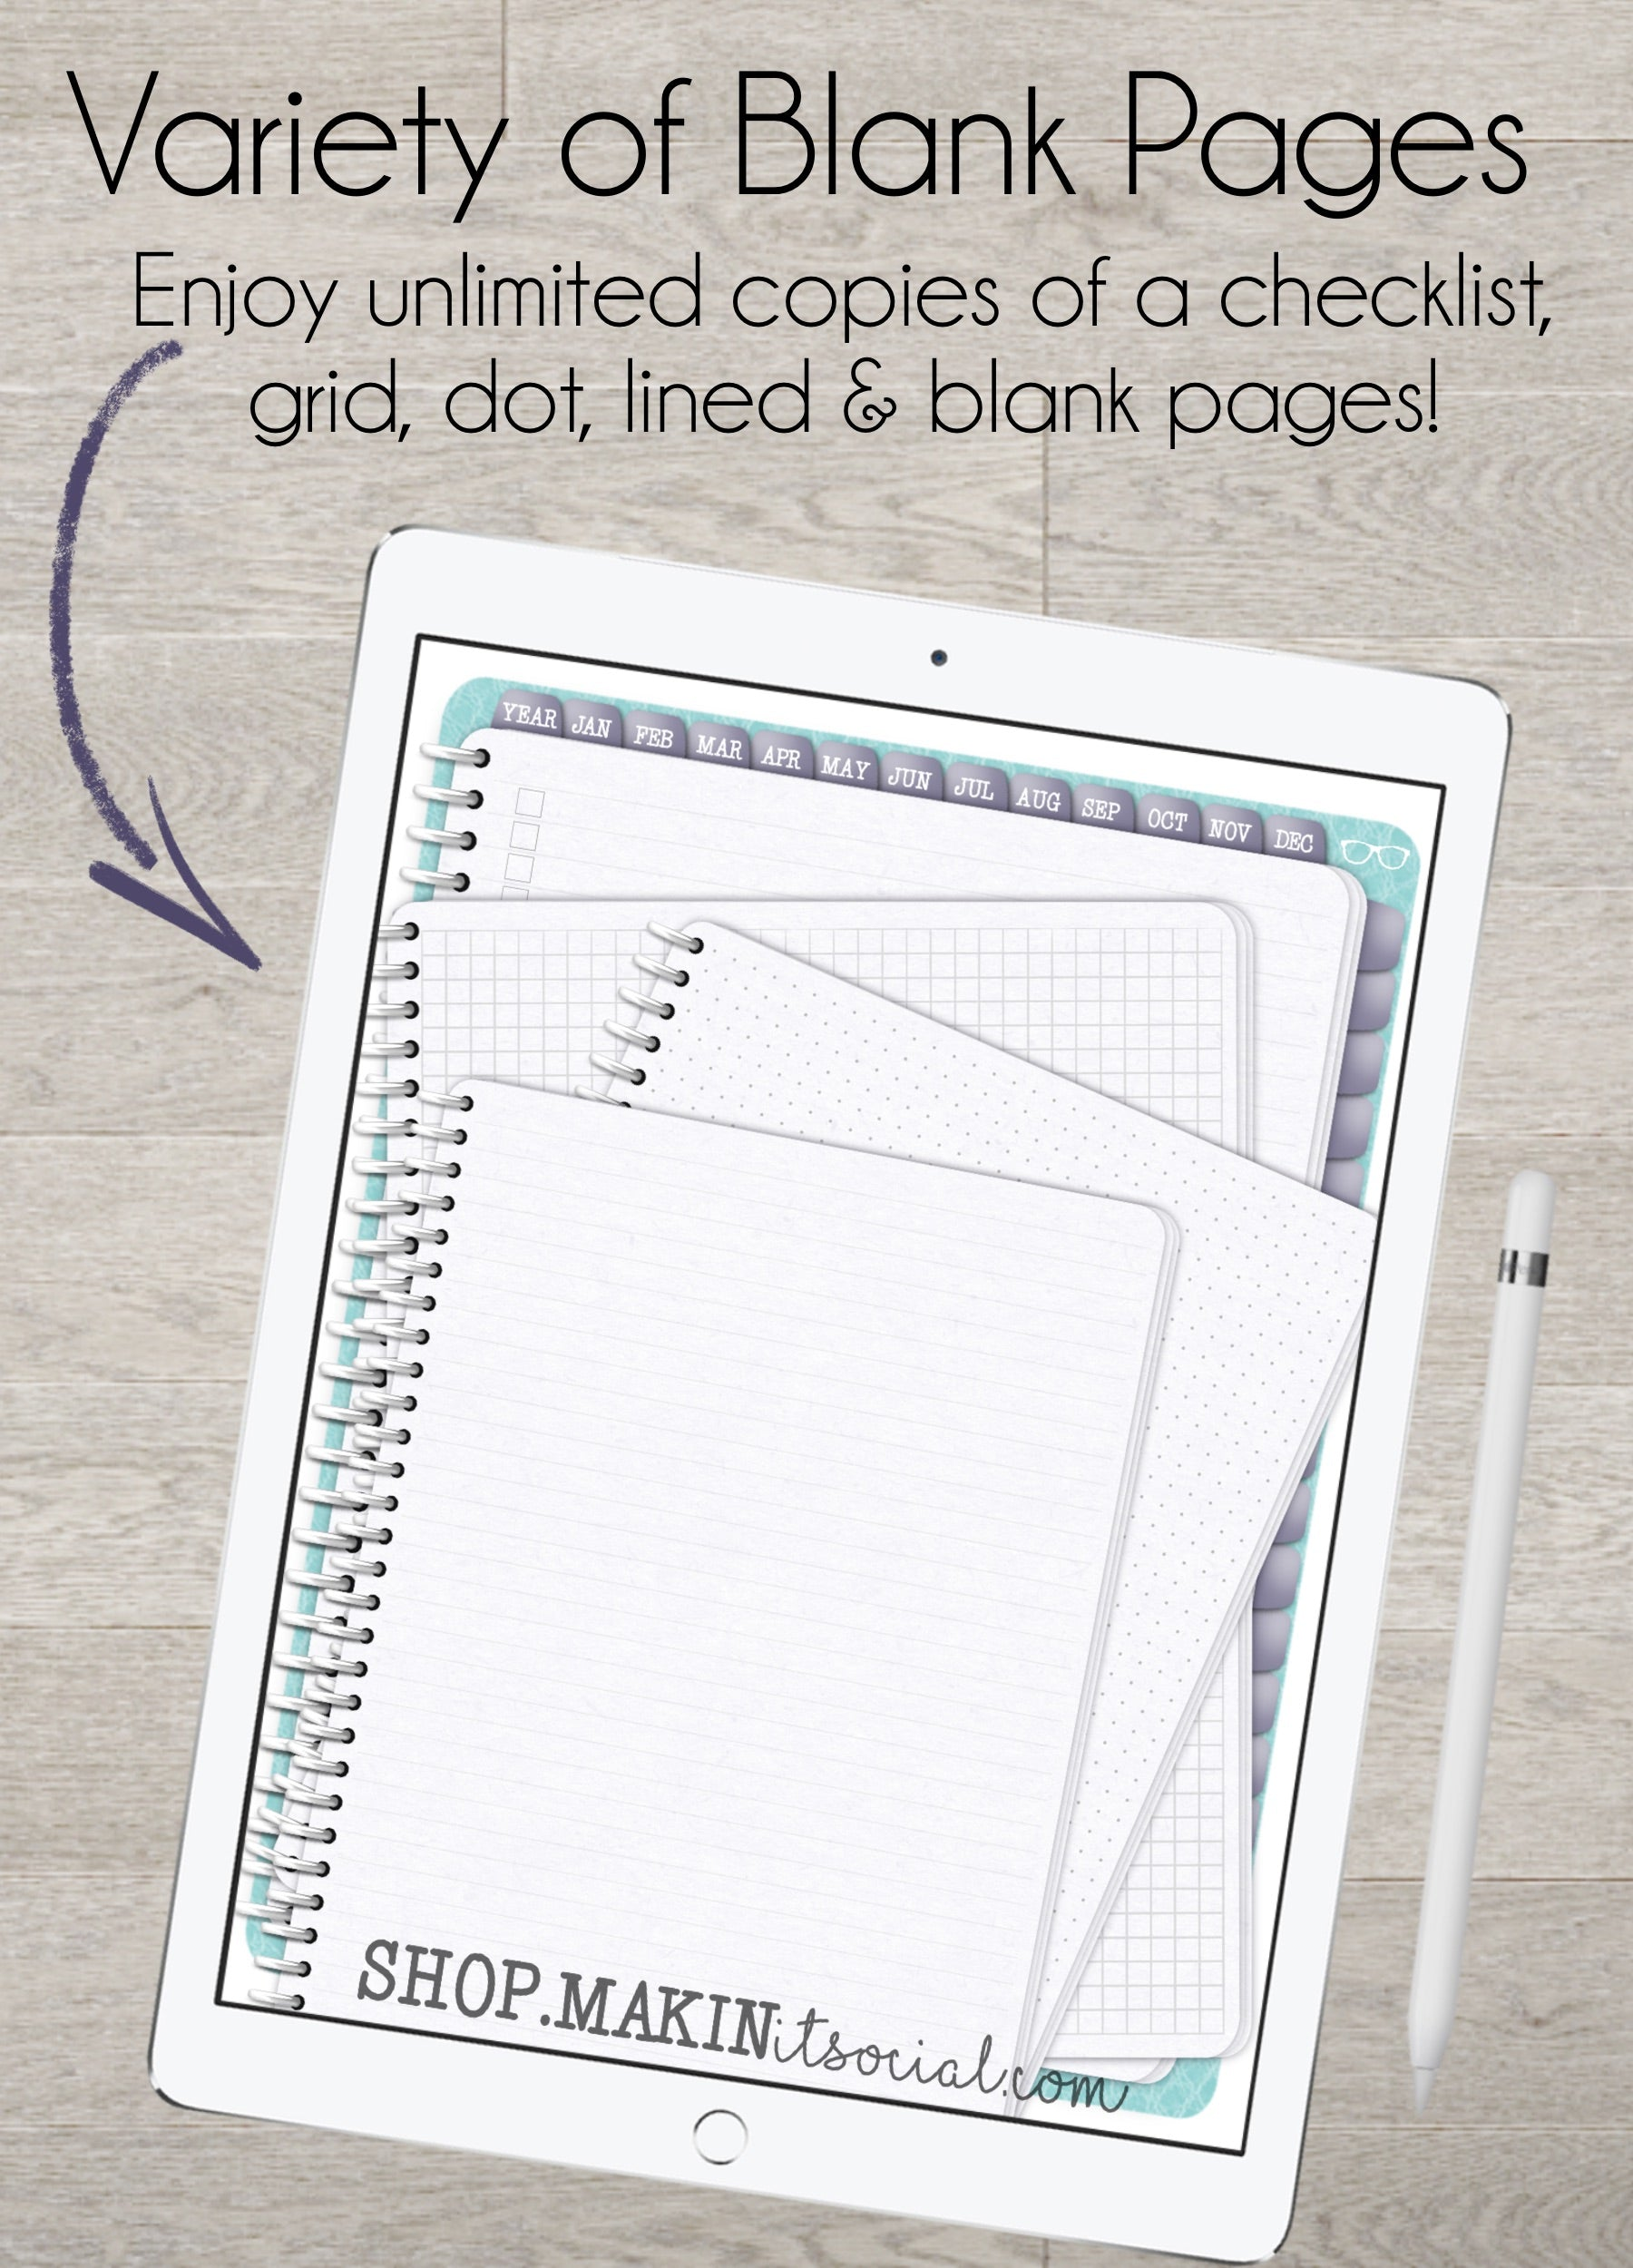 Makin it social Now What Digital Direct Sales Planner Teal Dated variety blank pages